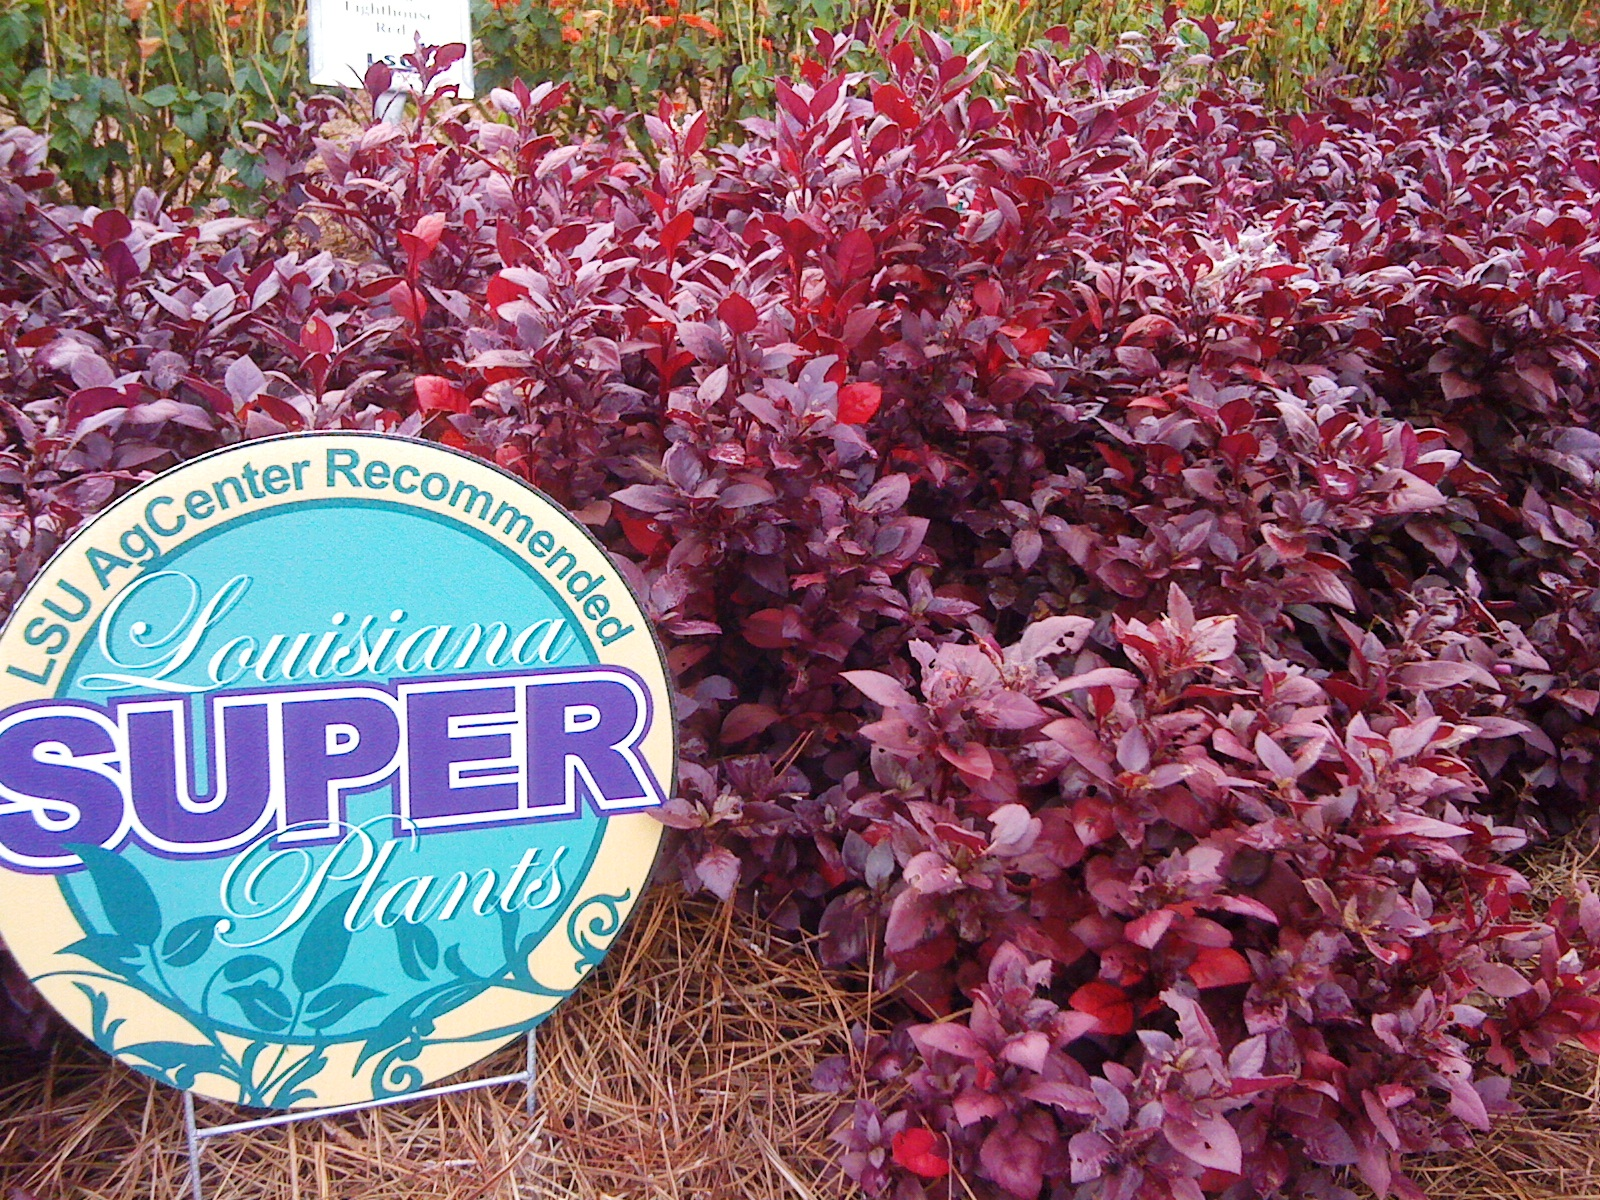 Joseph's coat provides colorful foliage; Little Ruby variety named Super Plant